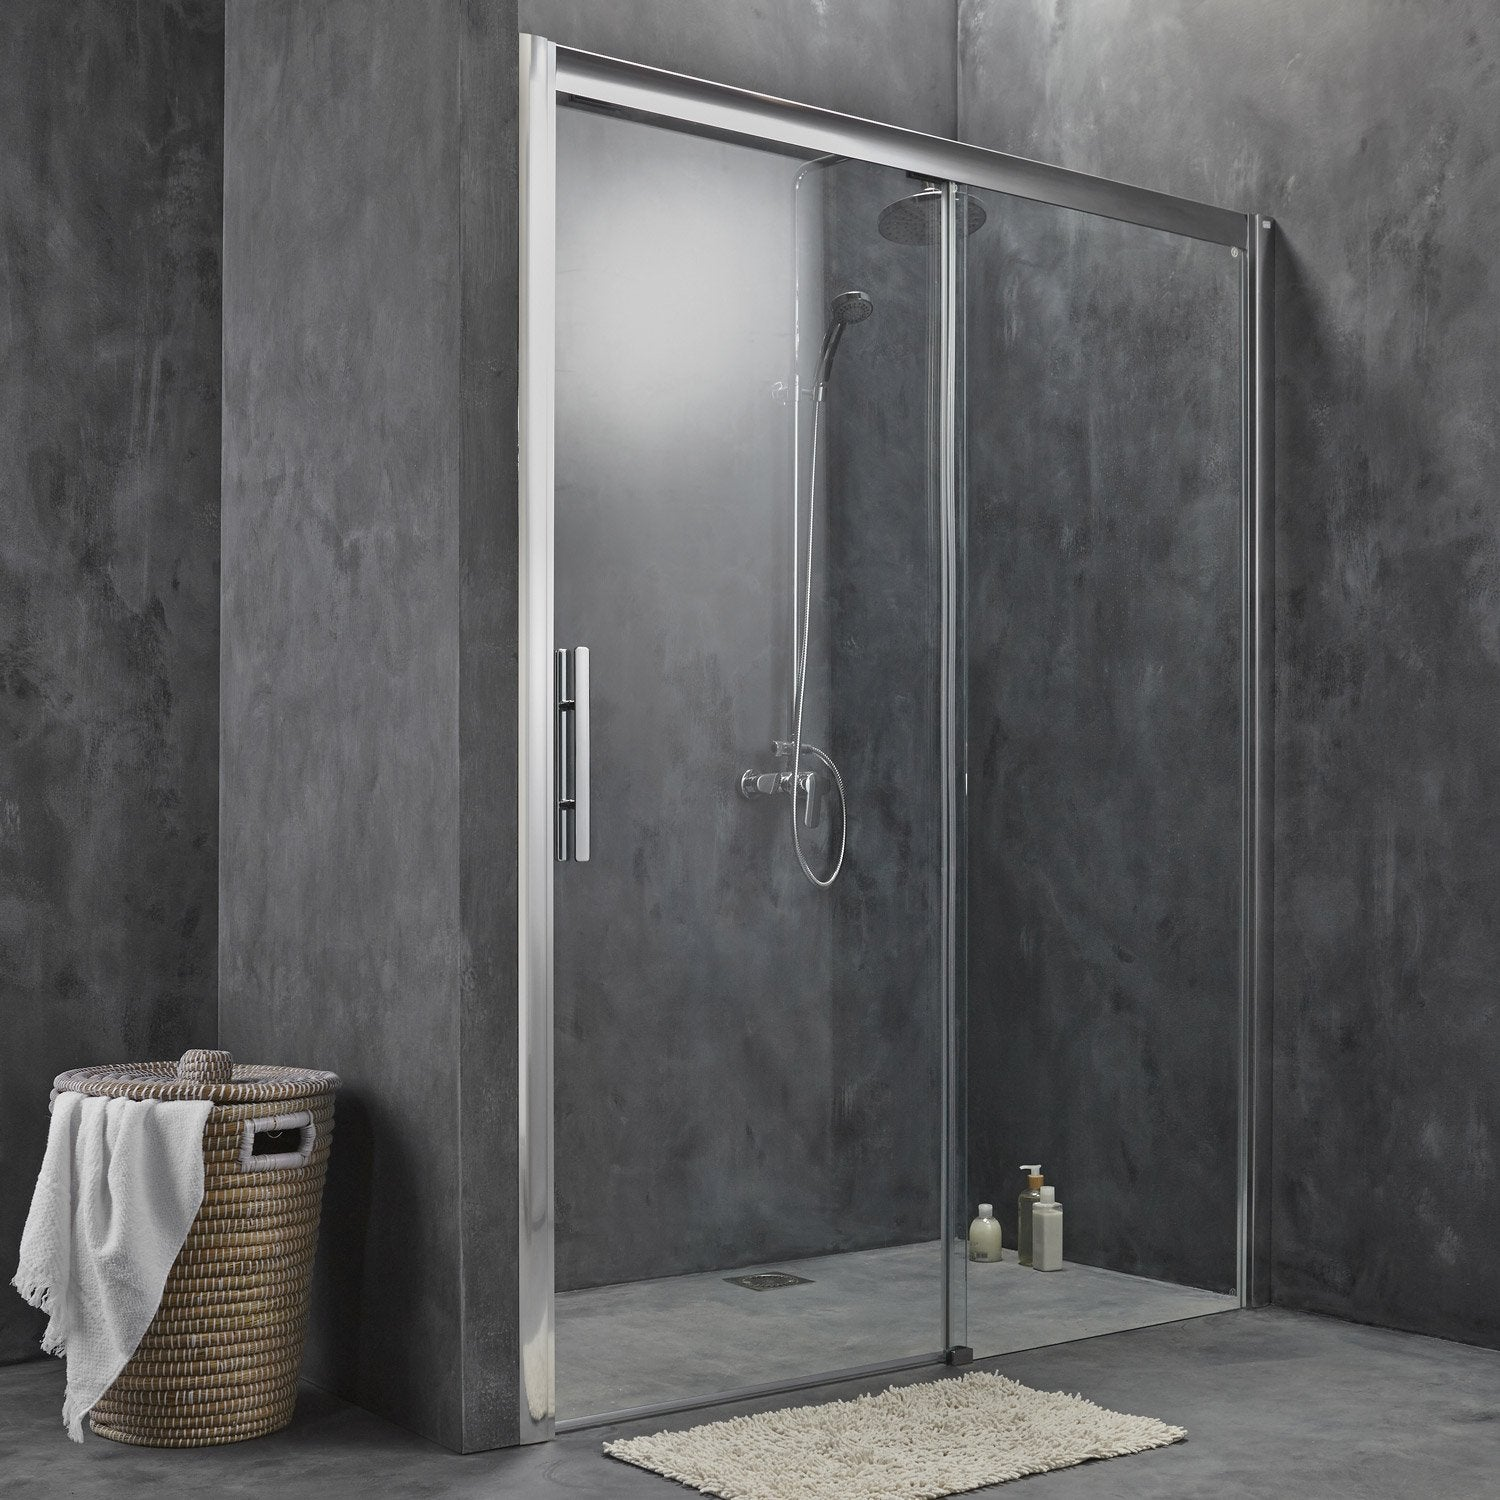 Porte de douche coulissante 170 cm transparent adena for Prix douche italienne leroy merlin